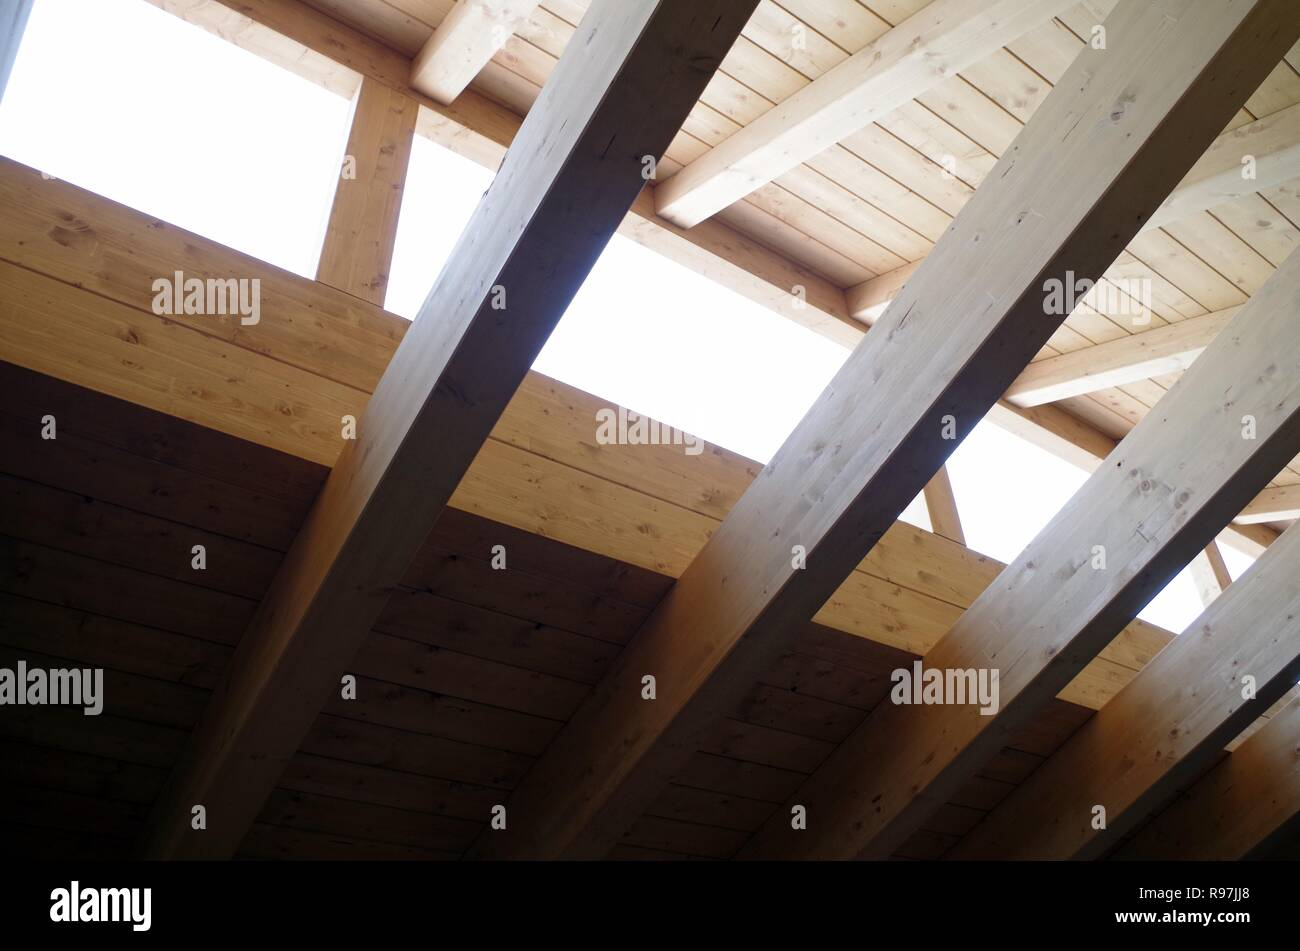 In Legno Wood Design wood architecture building near milan laminated timber